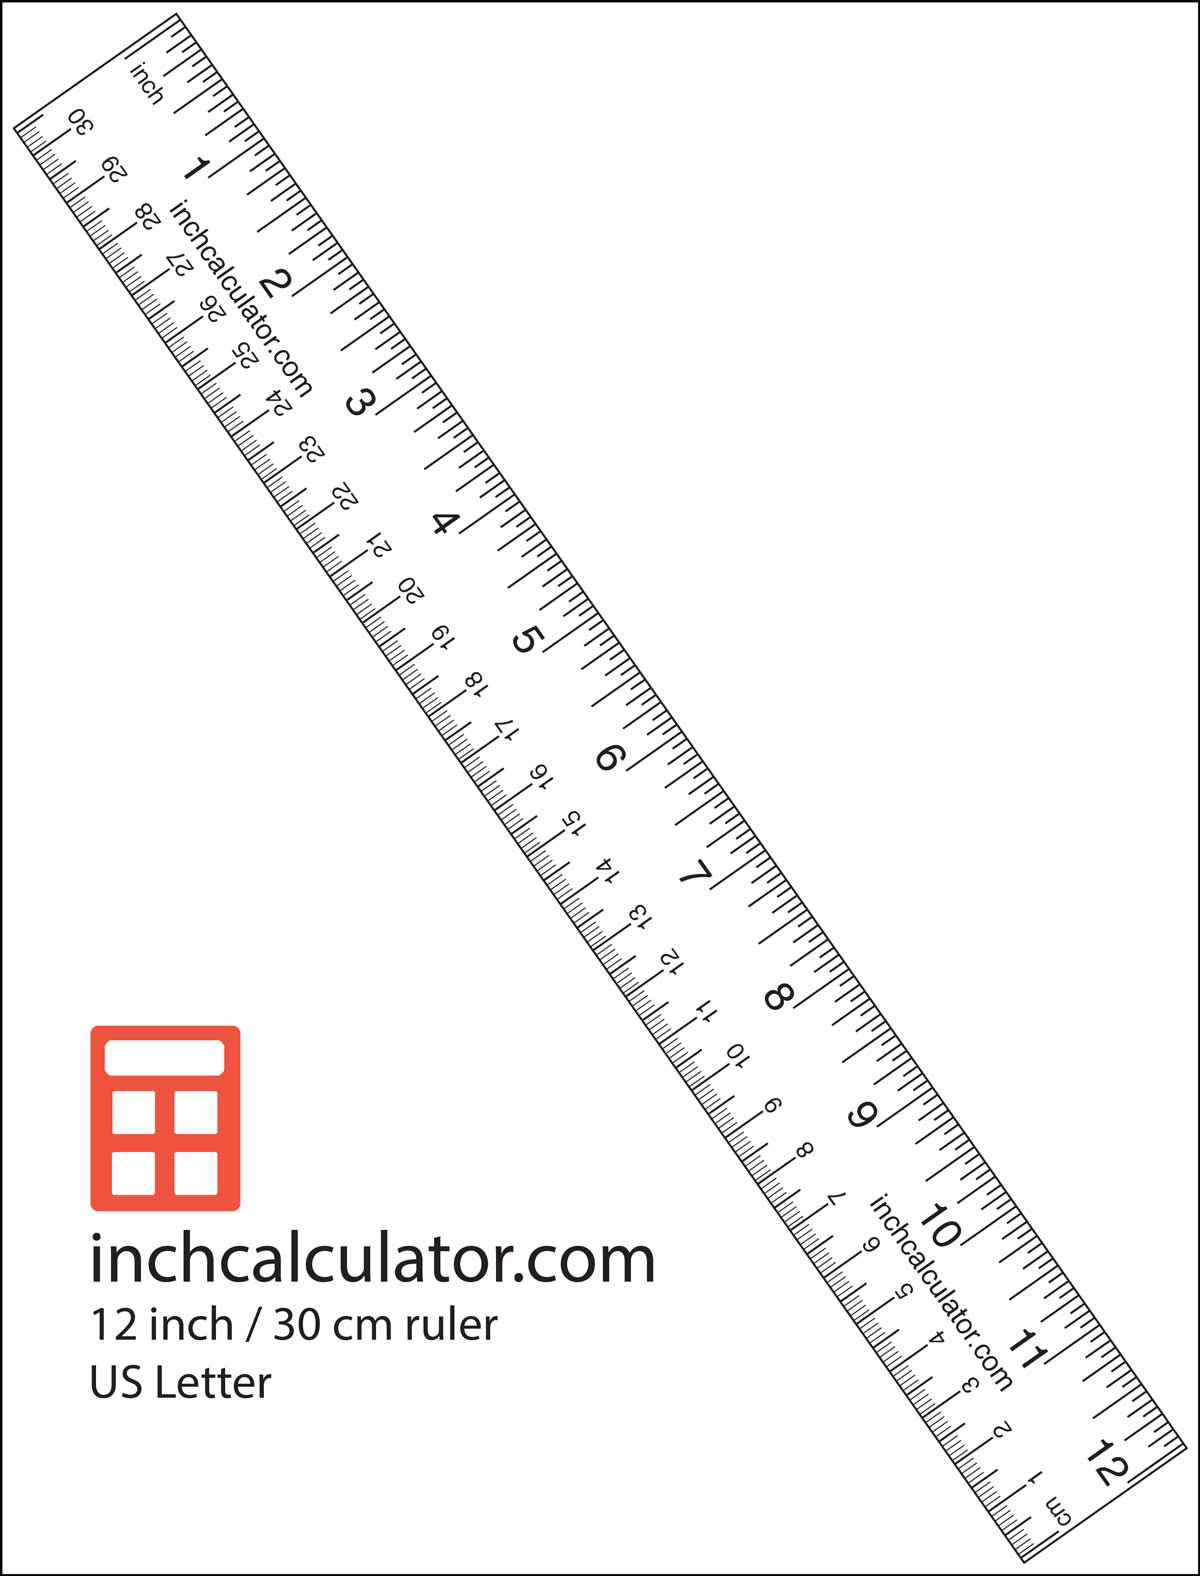 picture about Printable Cm Ruler named Printable Rulers - Free of charge Downloadable 12\